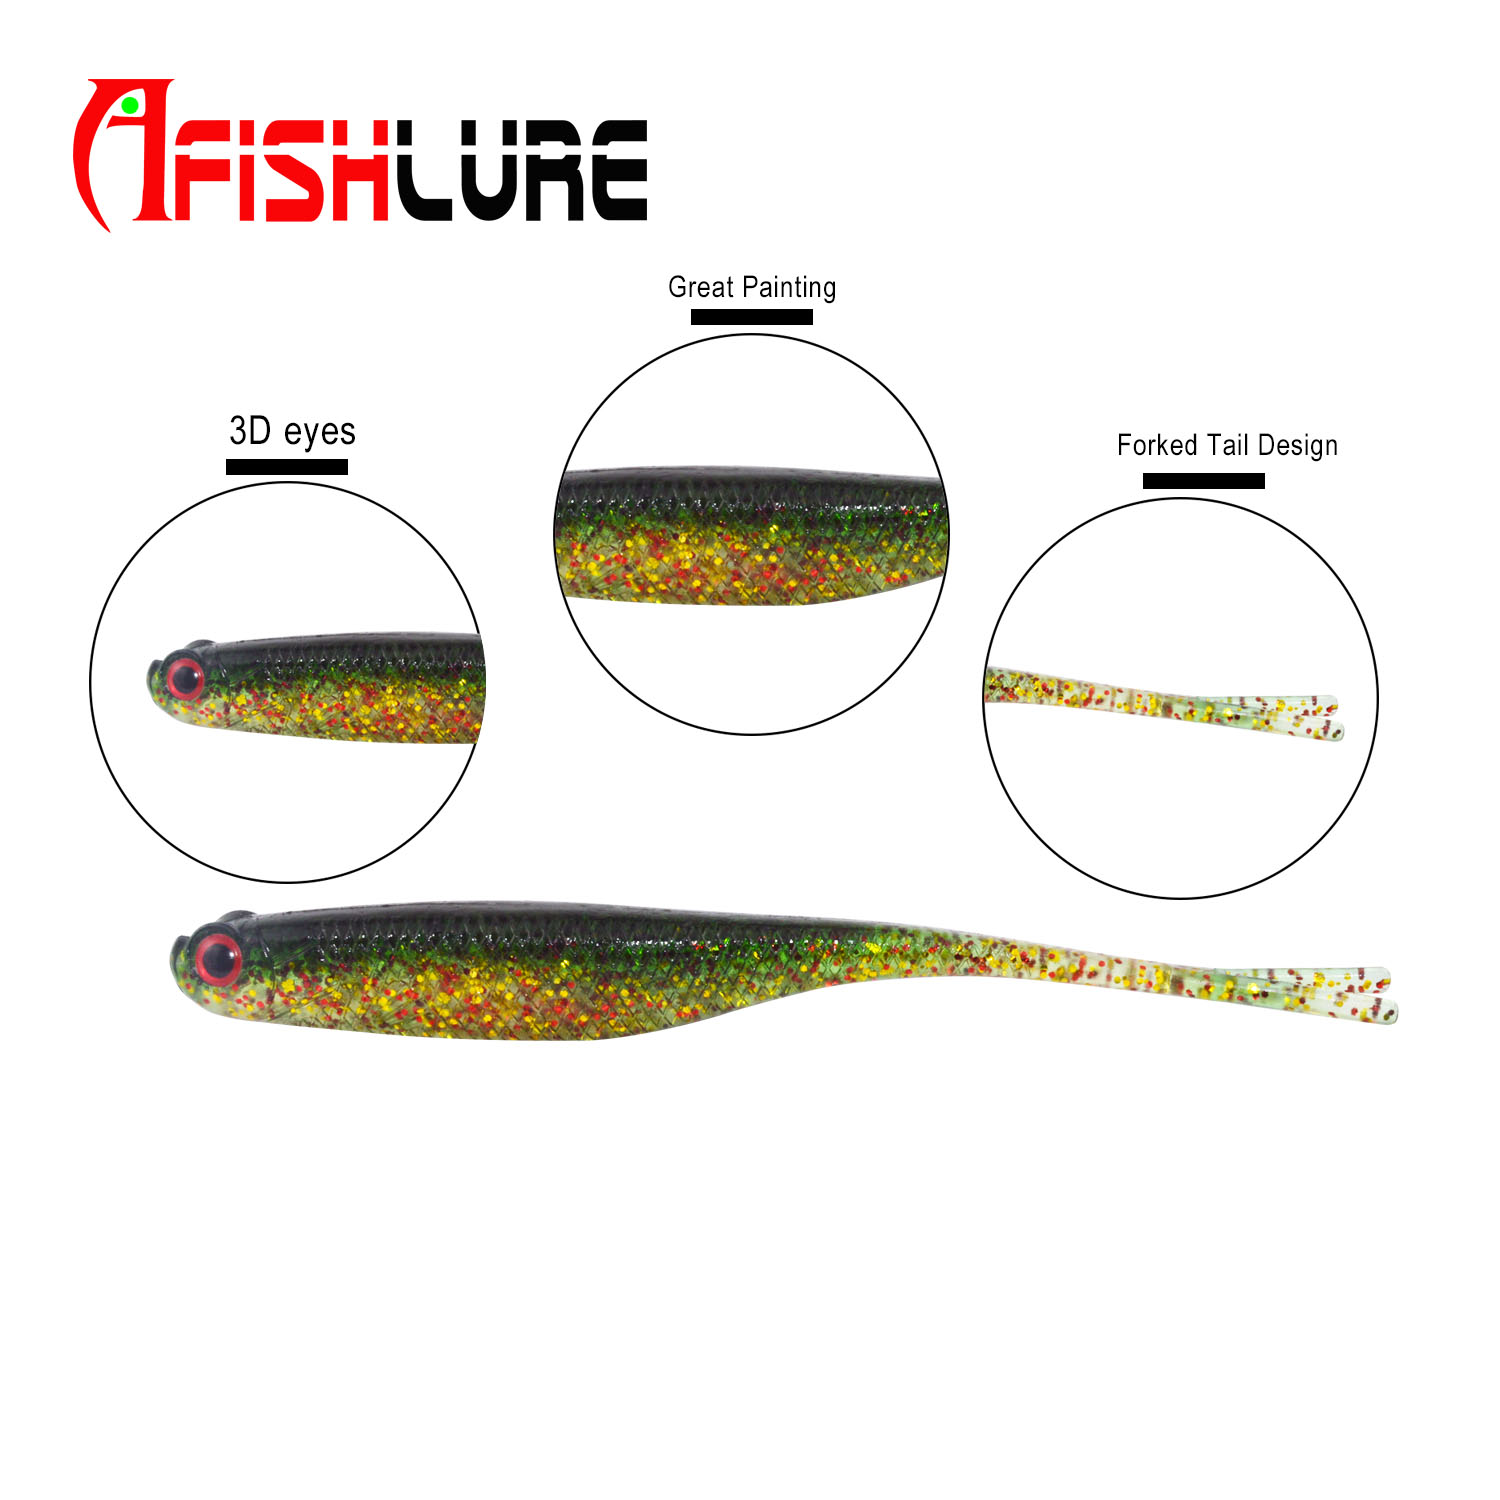 hight resolution of china bass fish bait china bass fish bait manufacturers and suppliers on alibaba com